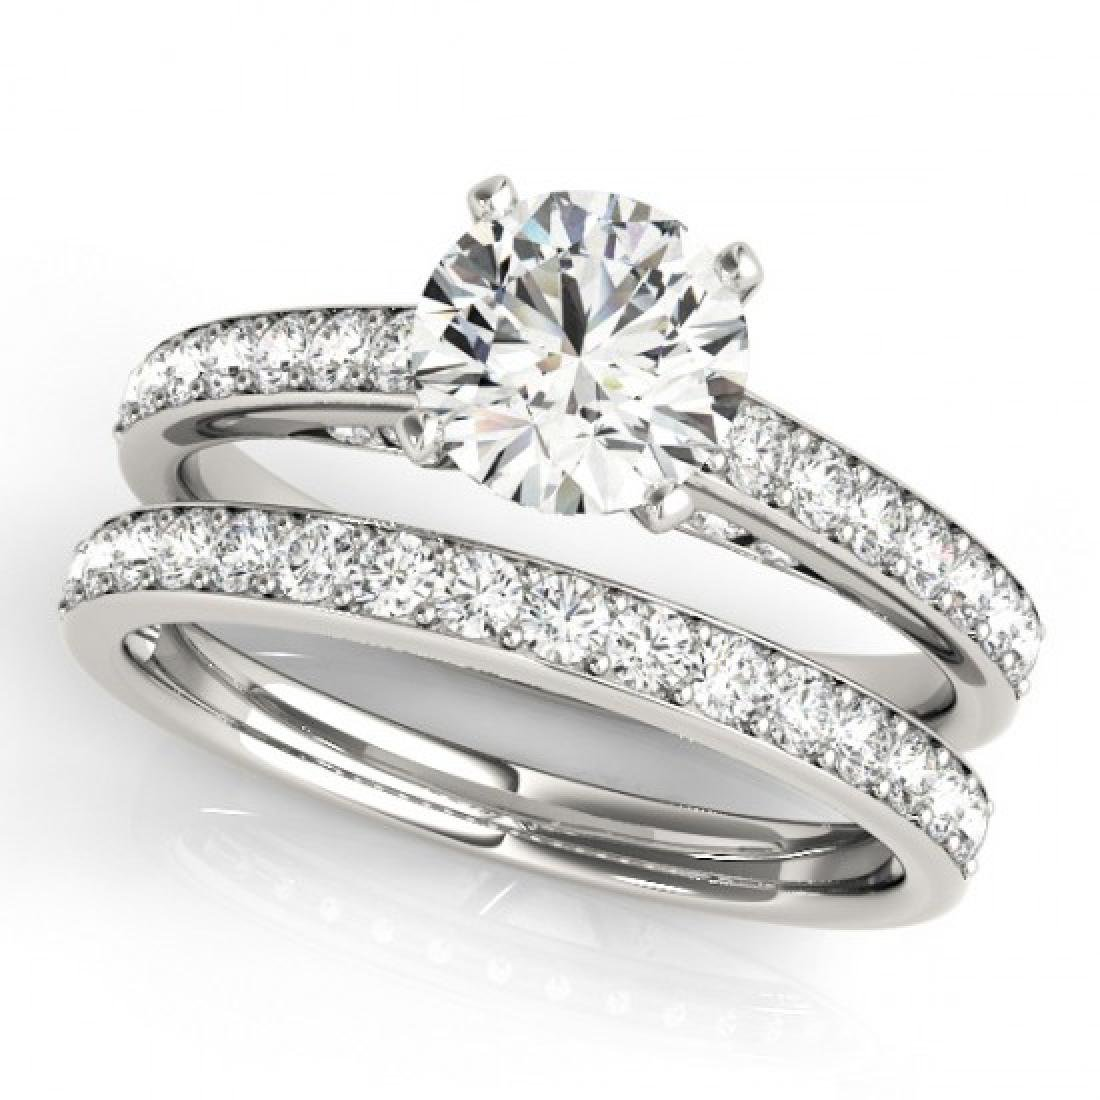 1.91 CTW Certified VS/SI Diamond Solitaire 2Pc Wedding